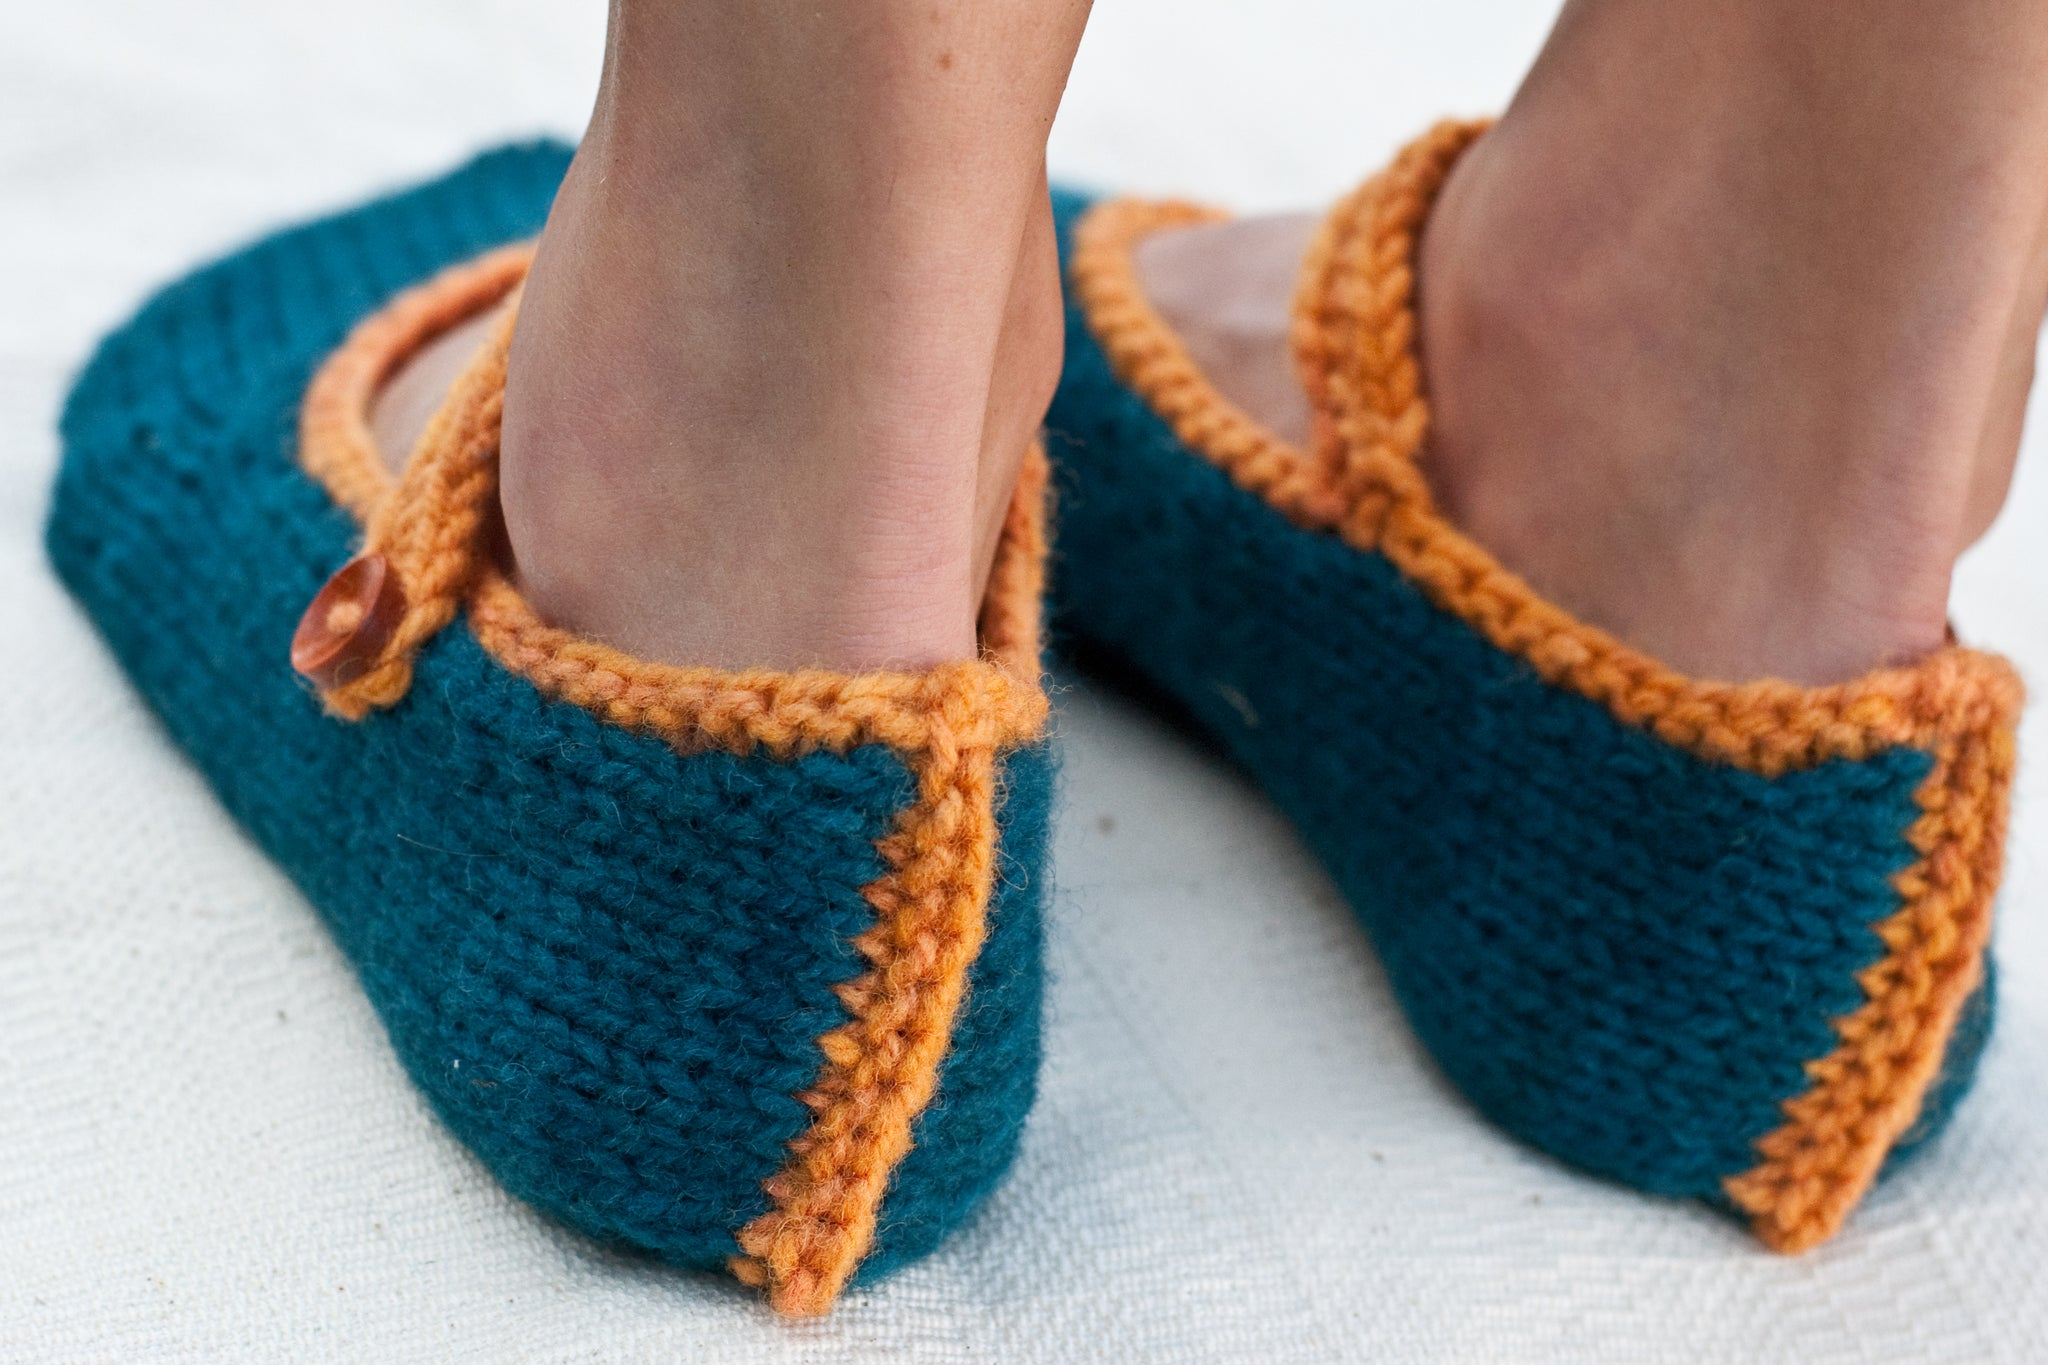 woman's feet wearing hand-knit slippers shown from back and focused on heel seam detail in contrast colour